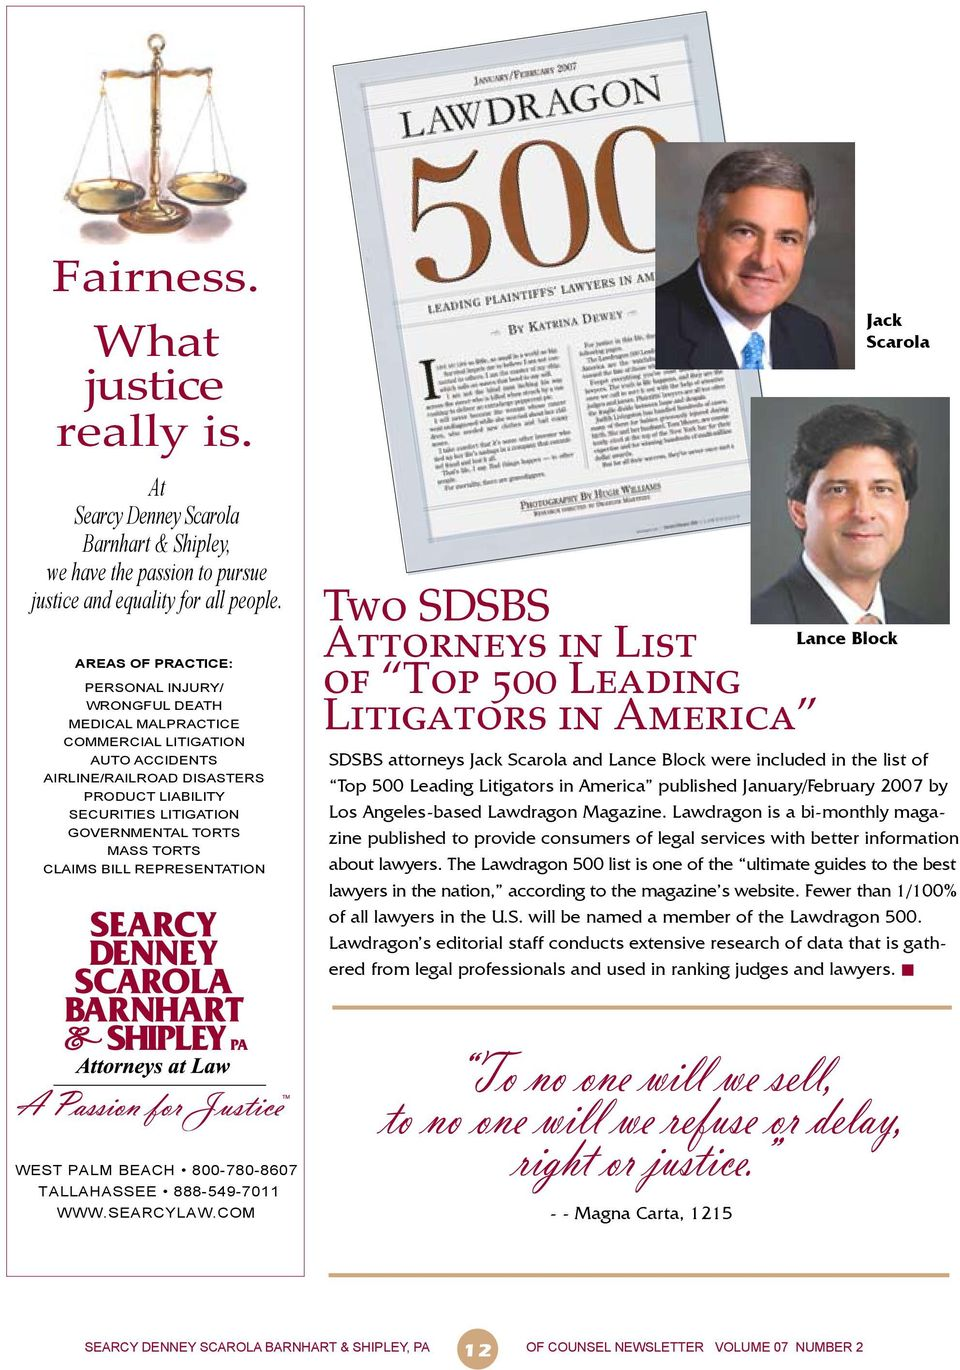 TORTS CLAIMS BILL REPRESENTATION Two SDSBS Attorneys in List of Top 500 Leading Litigators in America Lance Block Jack Scarola SDSBS attorneys Jack Scarola and Lance Block were included in the list